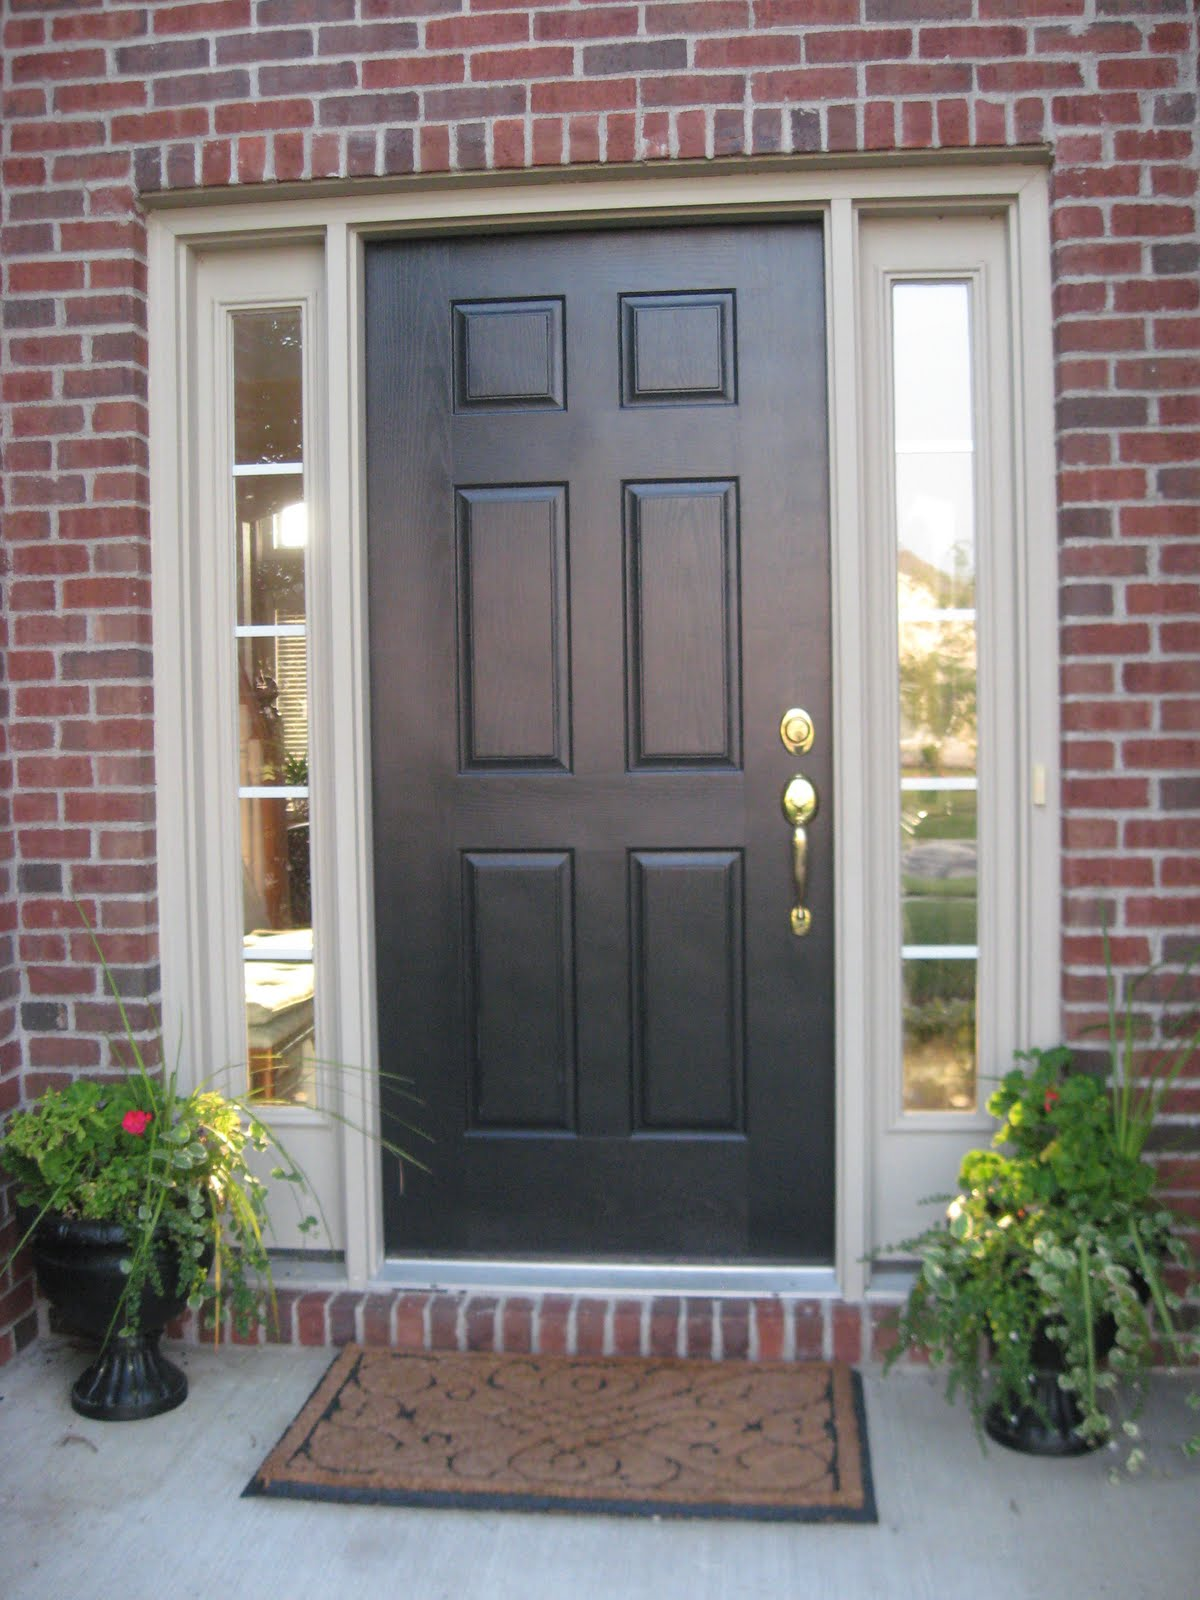 1600 #466135  Exterior Front Door Designs Furthermore Front Door Paint. On Front pic Paint Colors For Front Doors Pictures 48211200